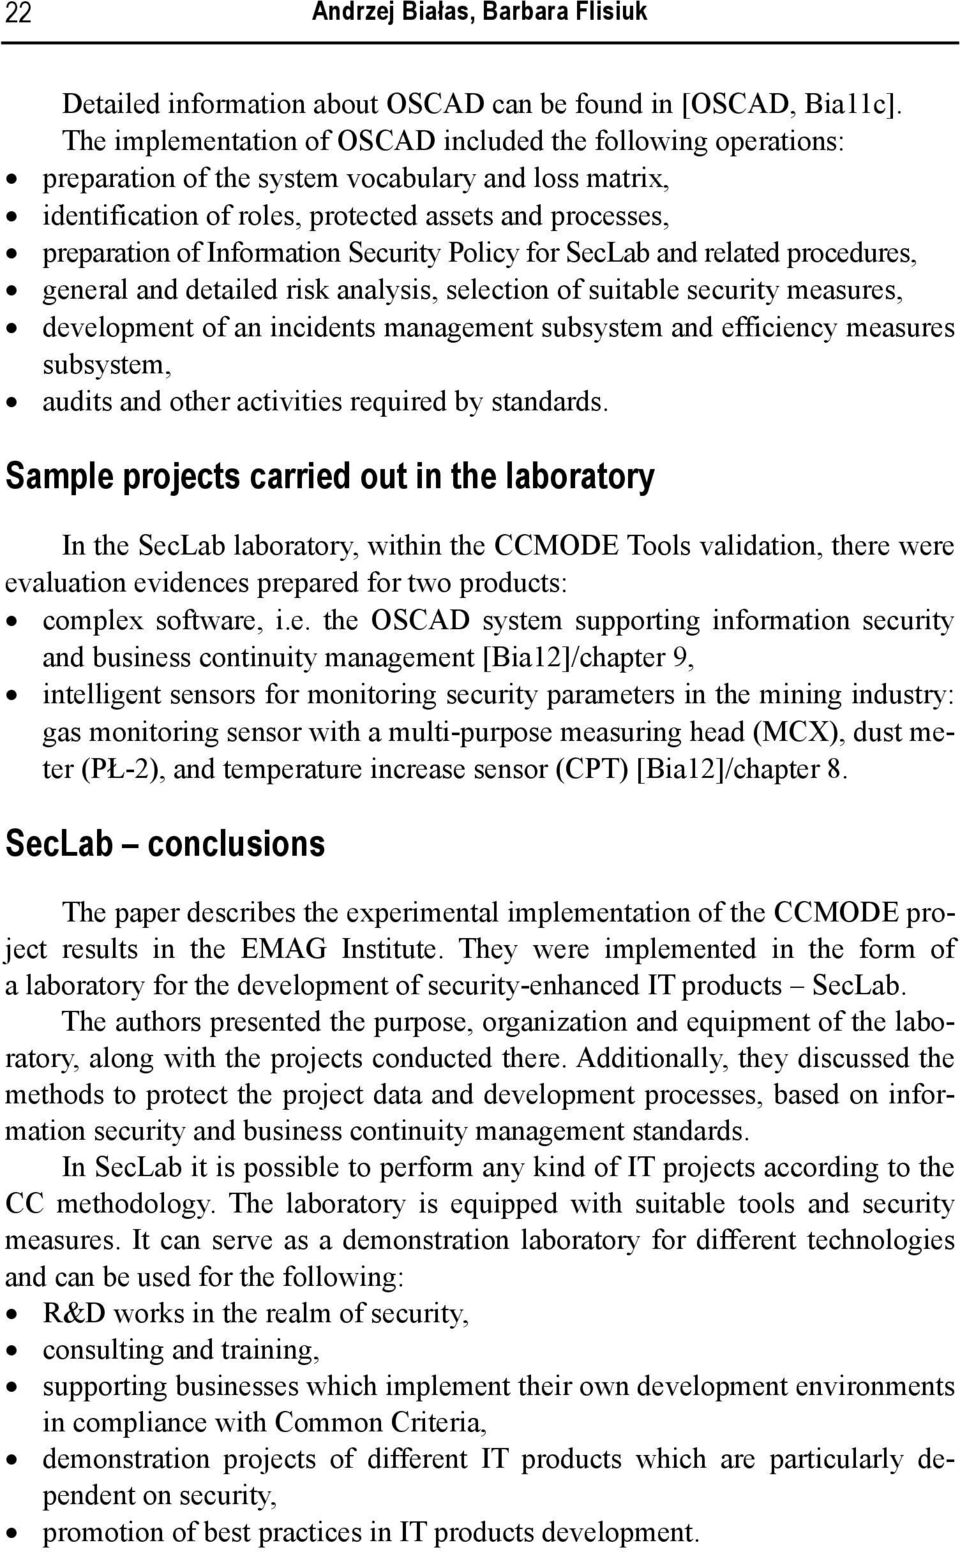 Information Security Policy for SecLab and related procedures, general and detailed risk analysis, selection of suitable security measures, development of an incidents management subsystem and